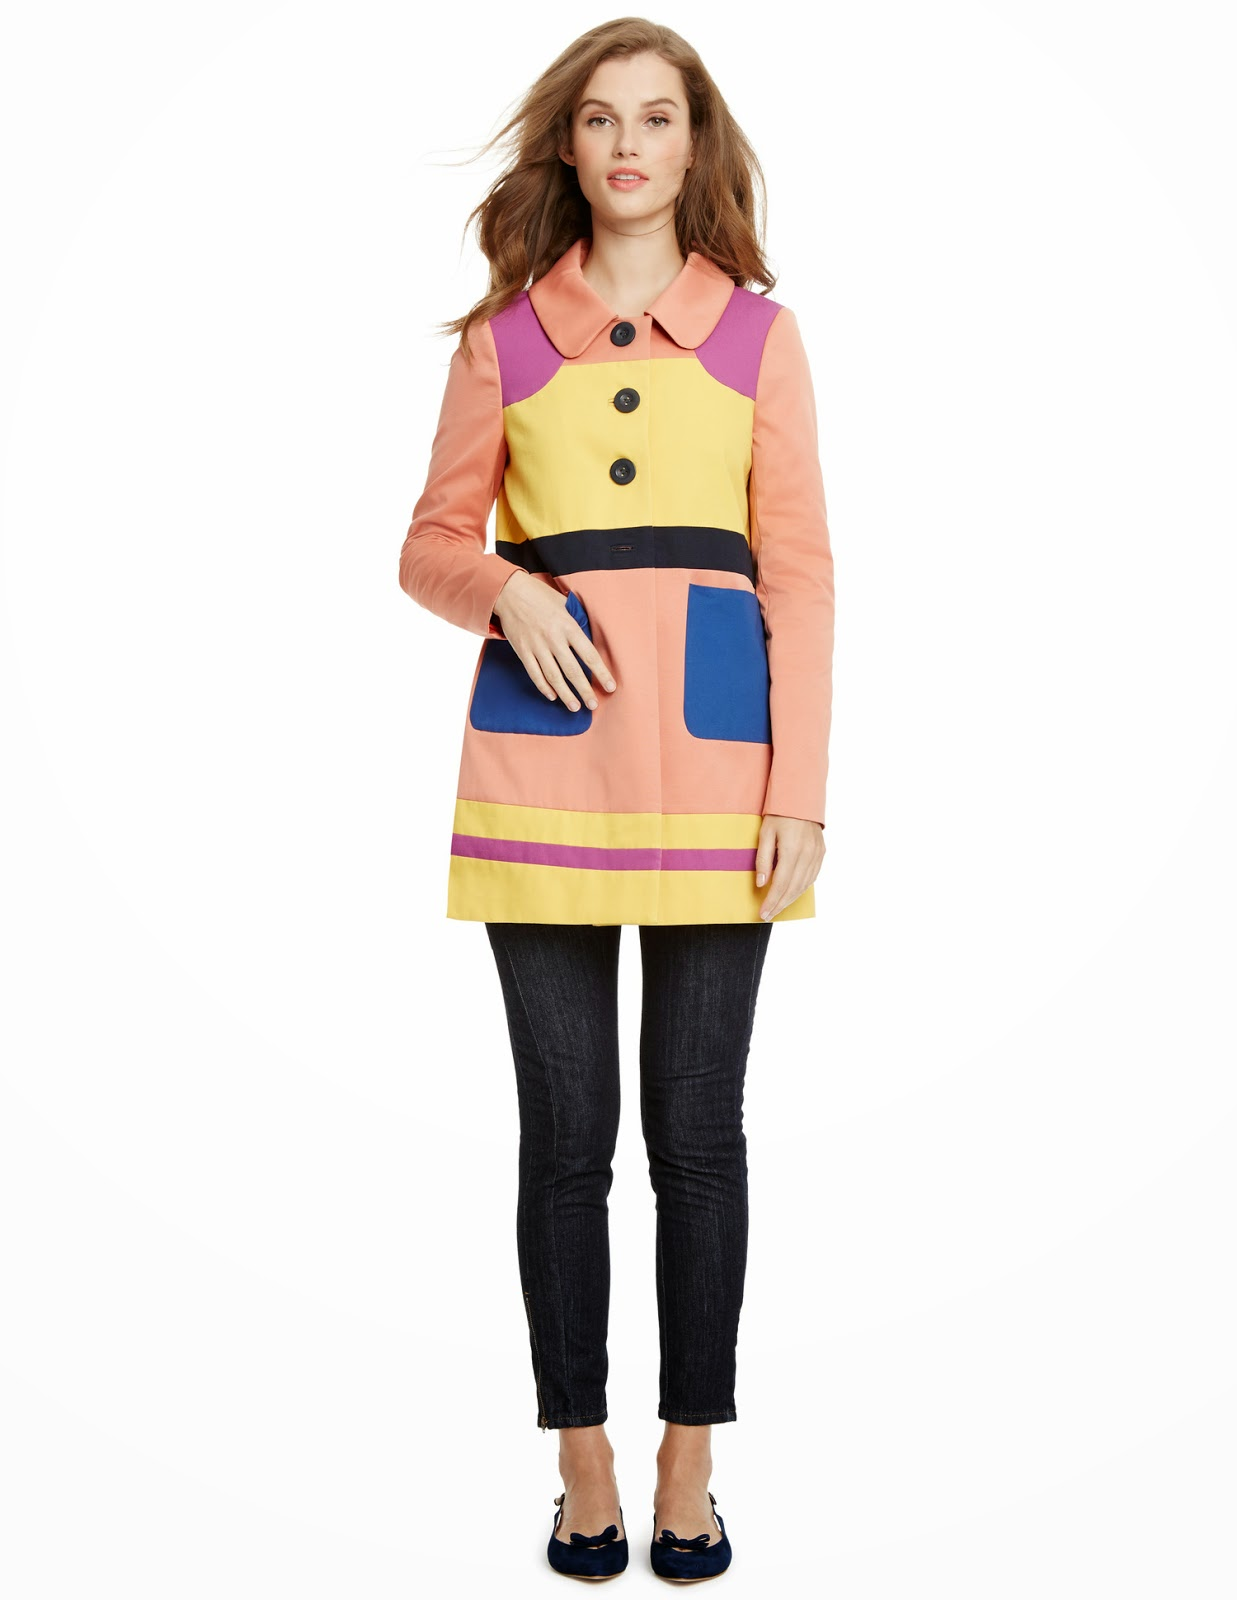 My superfluities boden 20 off outerwear and knitwear for Boden mid season sale 2015